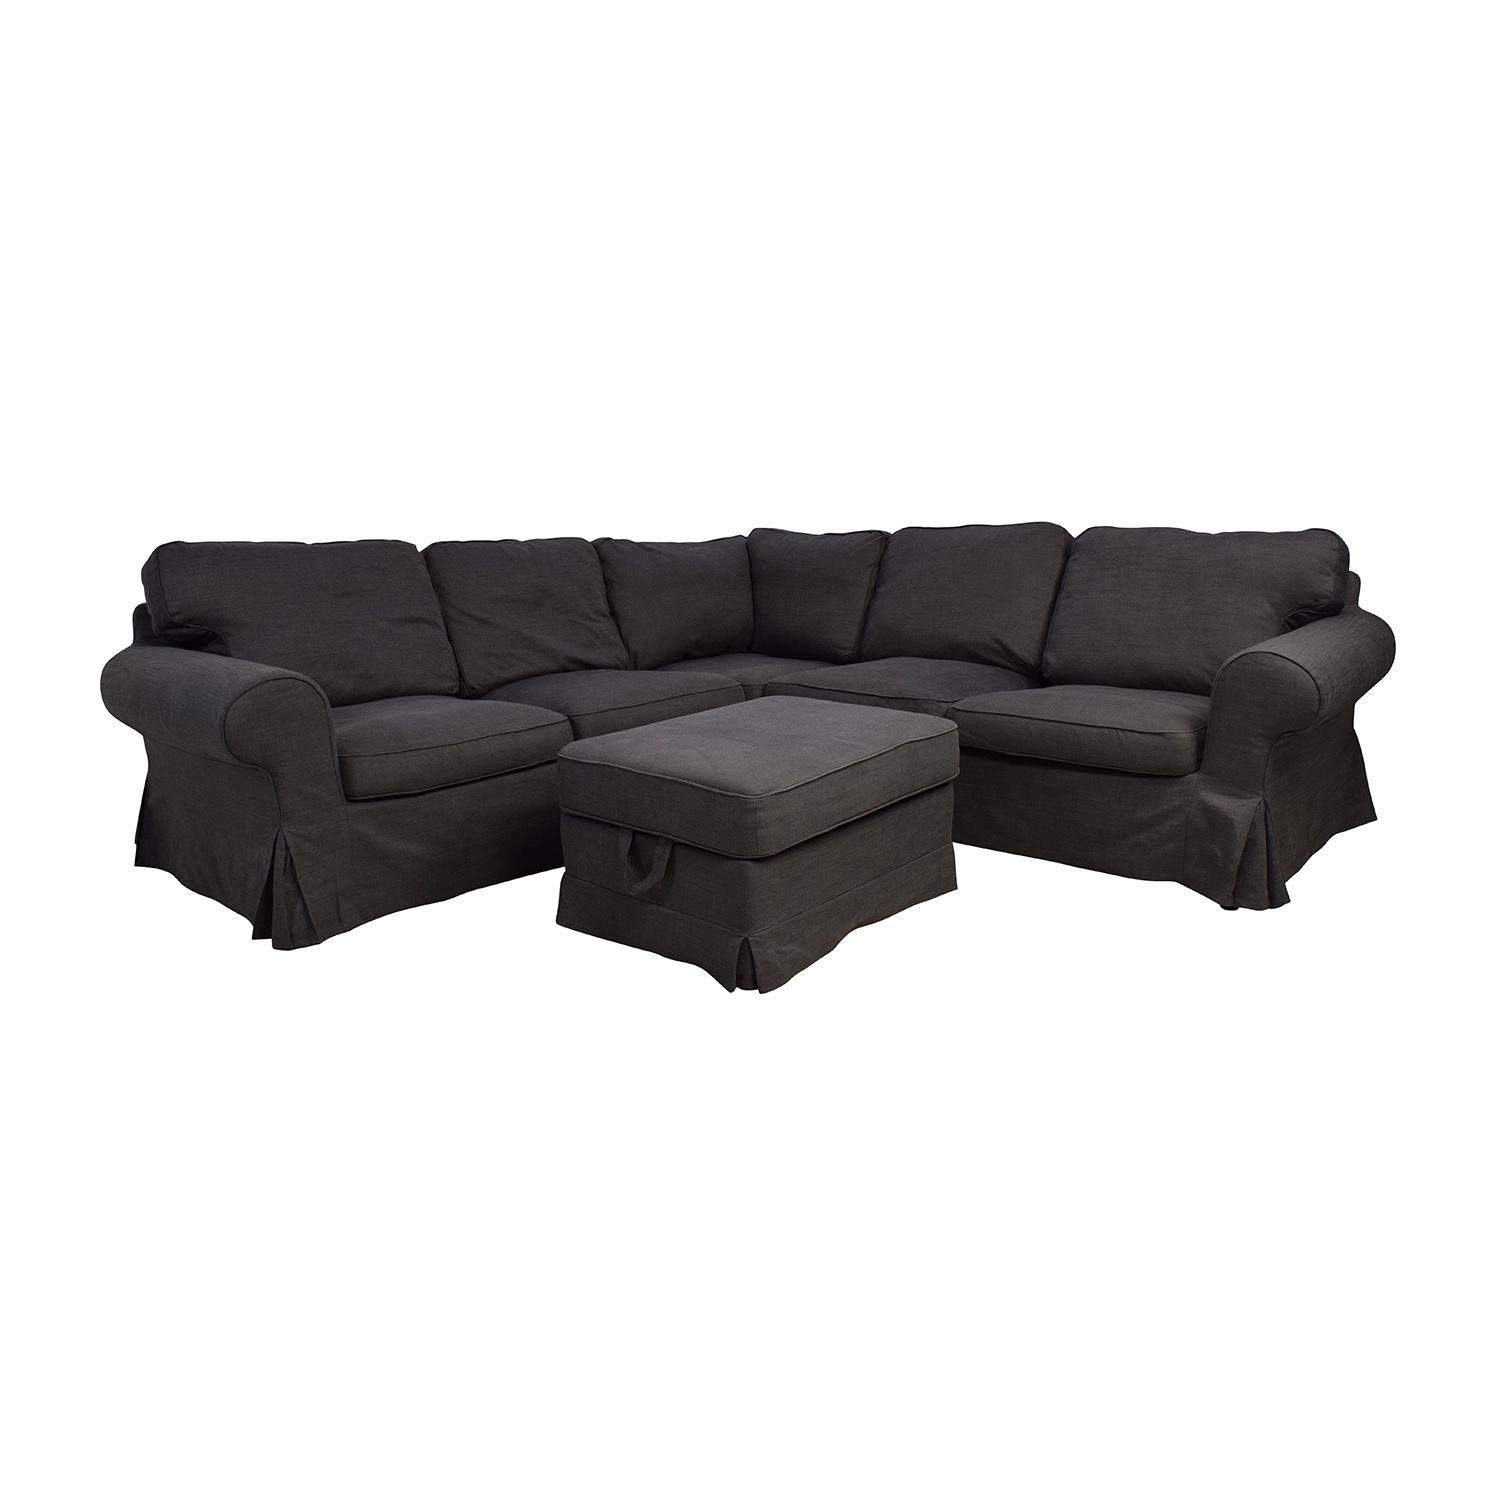 39% Off – Ikea Ikea Ektorp Gray Corner Sectional With Ottoman / Sofas Within Used Sectionals (View 18 of 20)